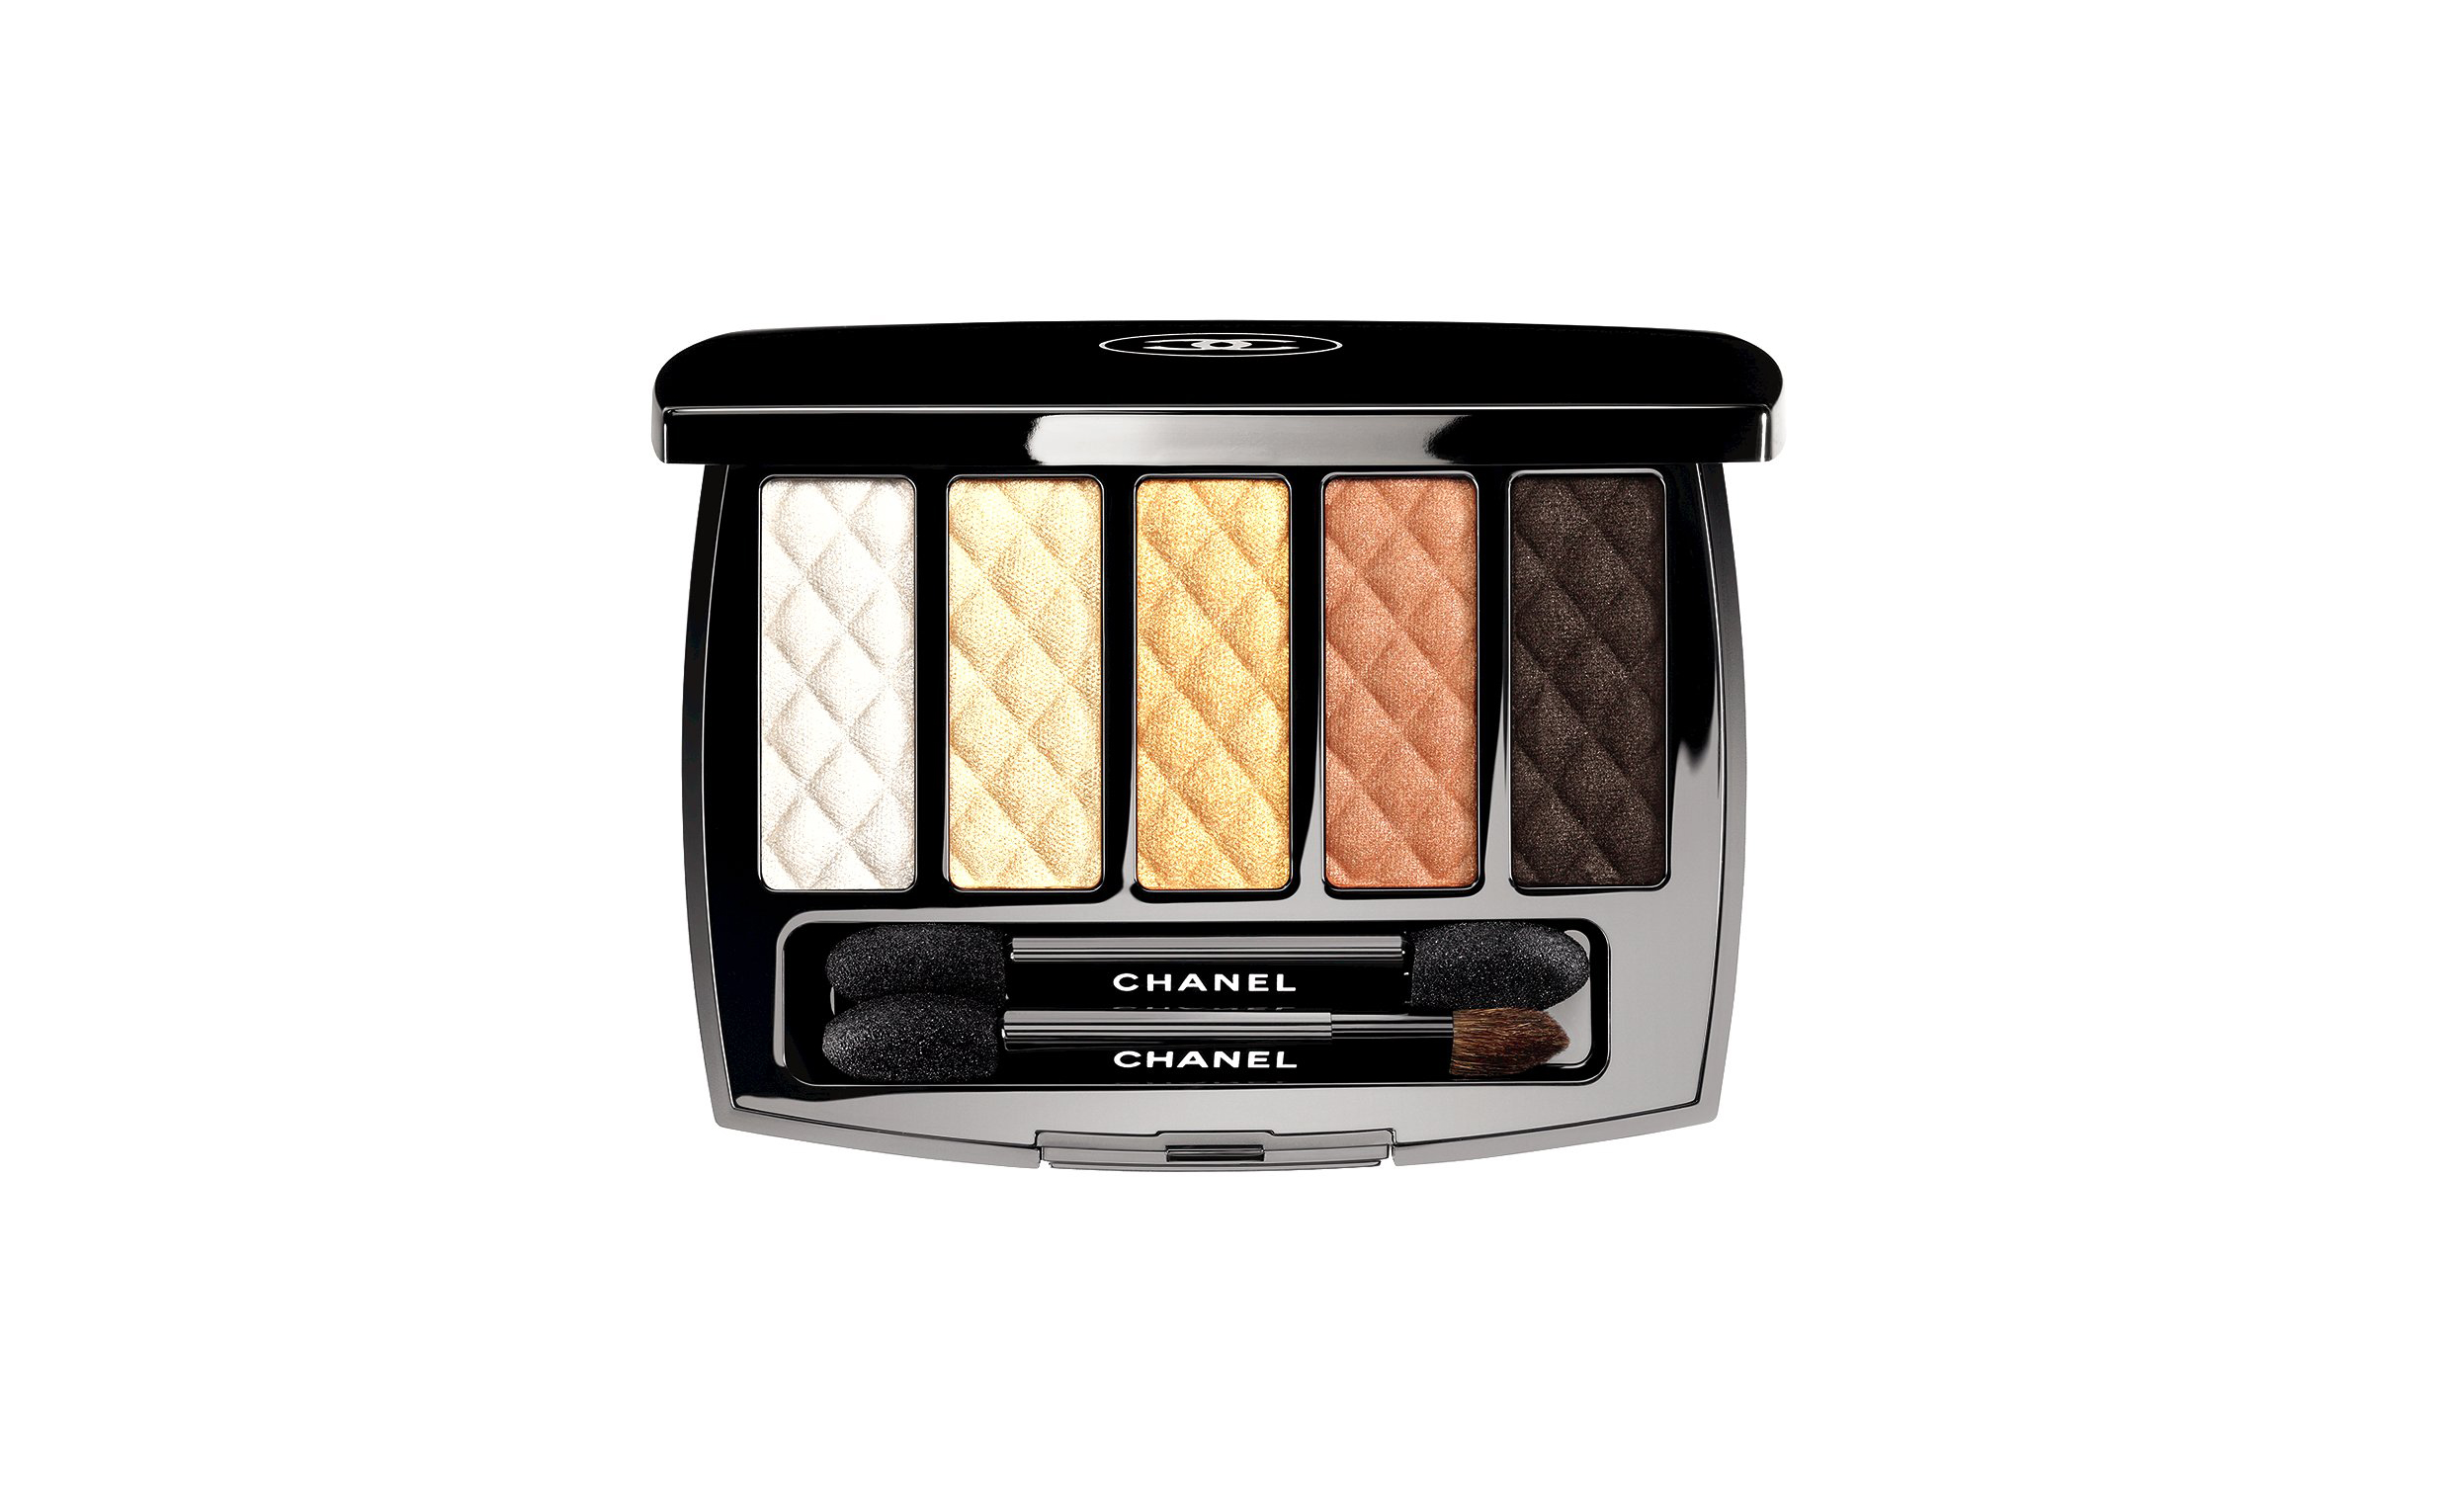 Chanel unveils Hong Kong beauty collection